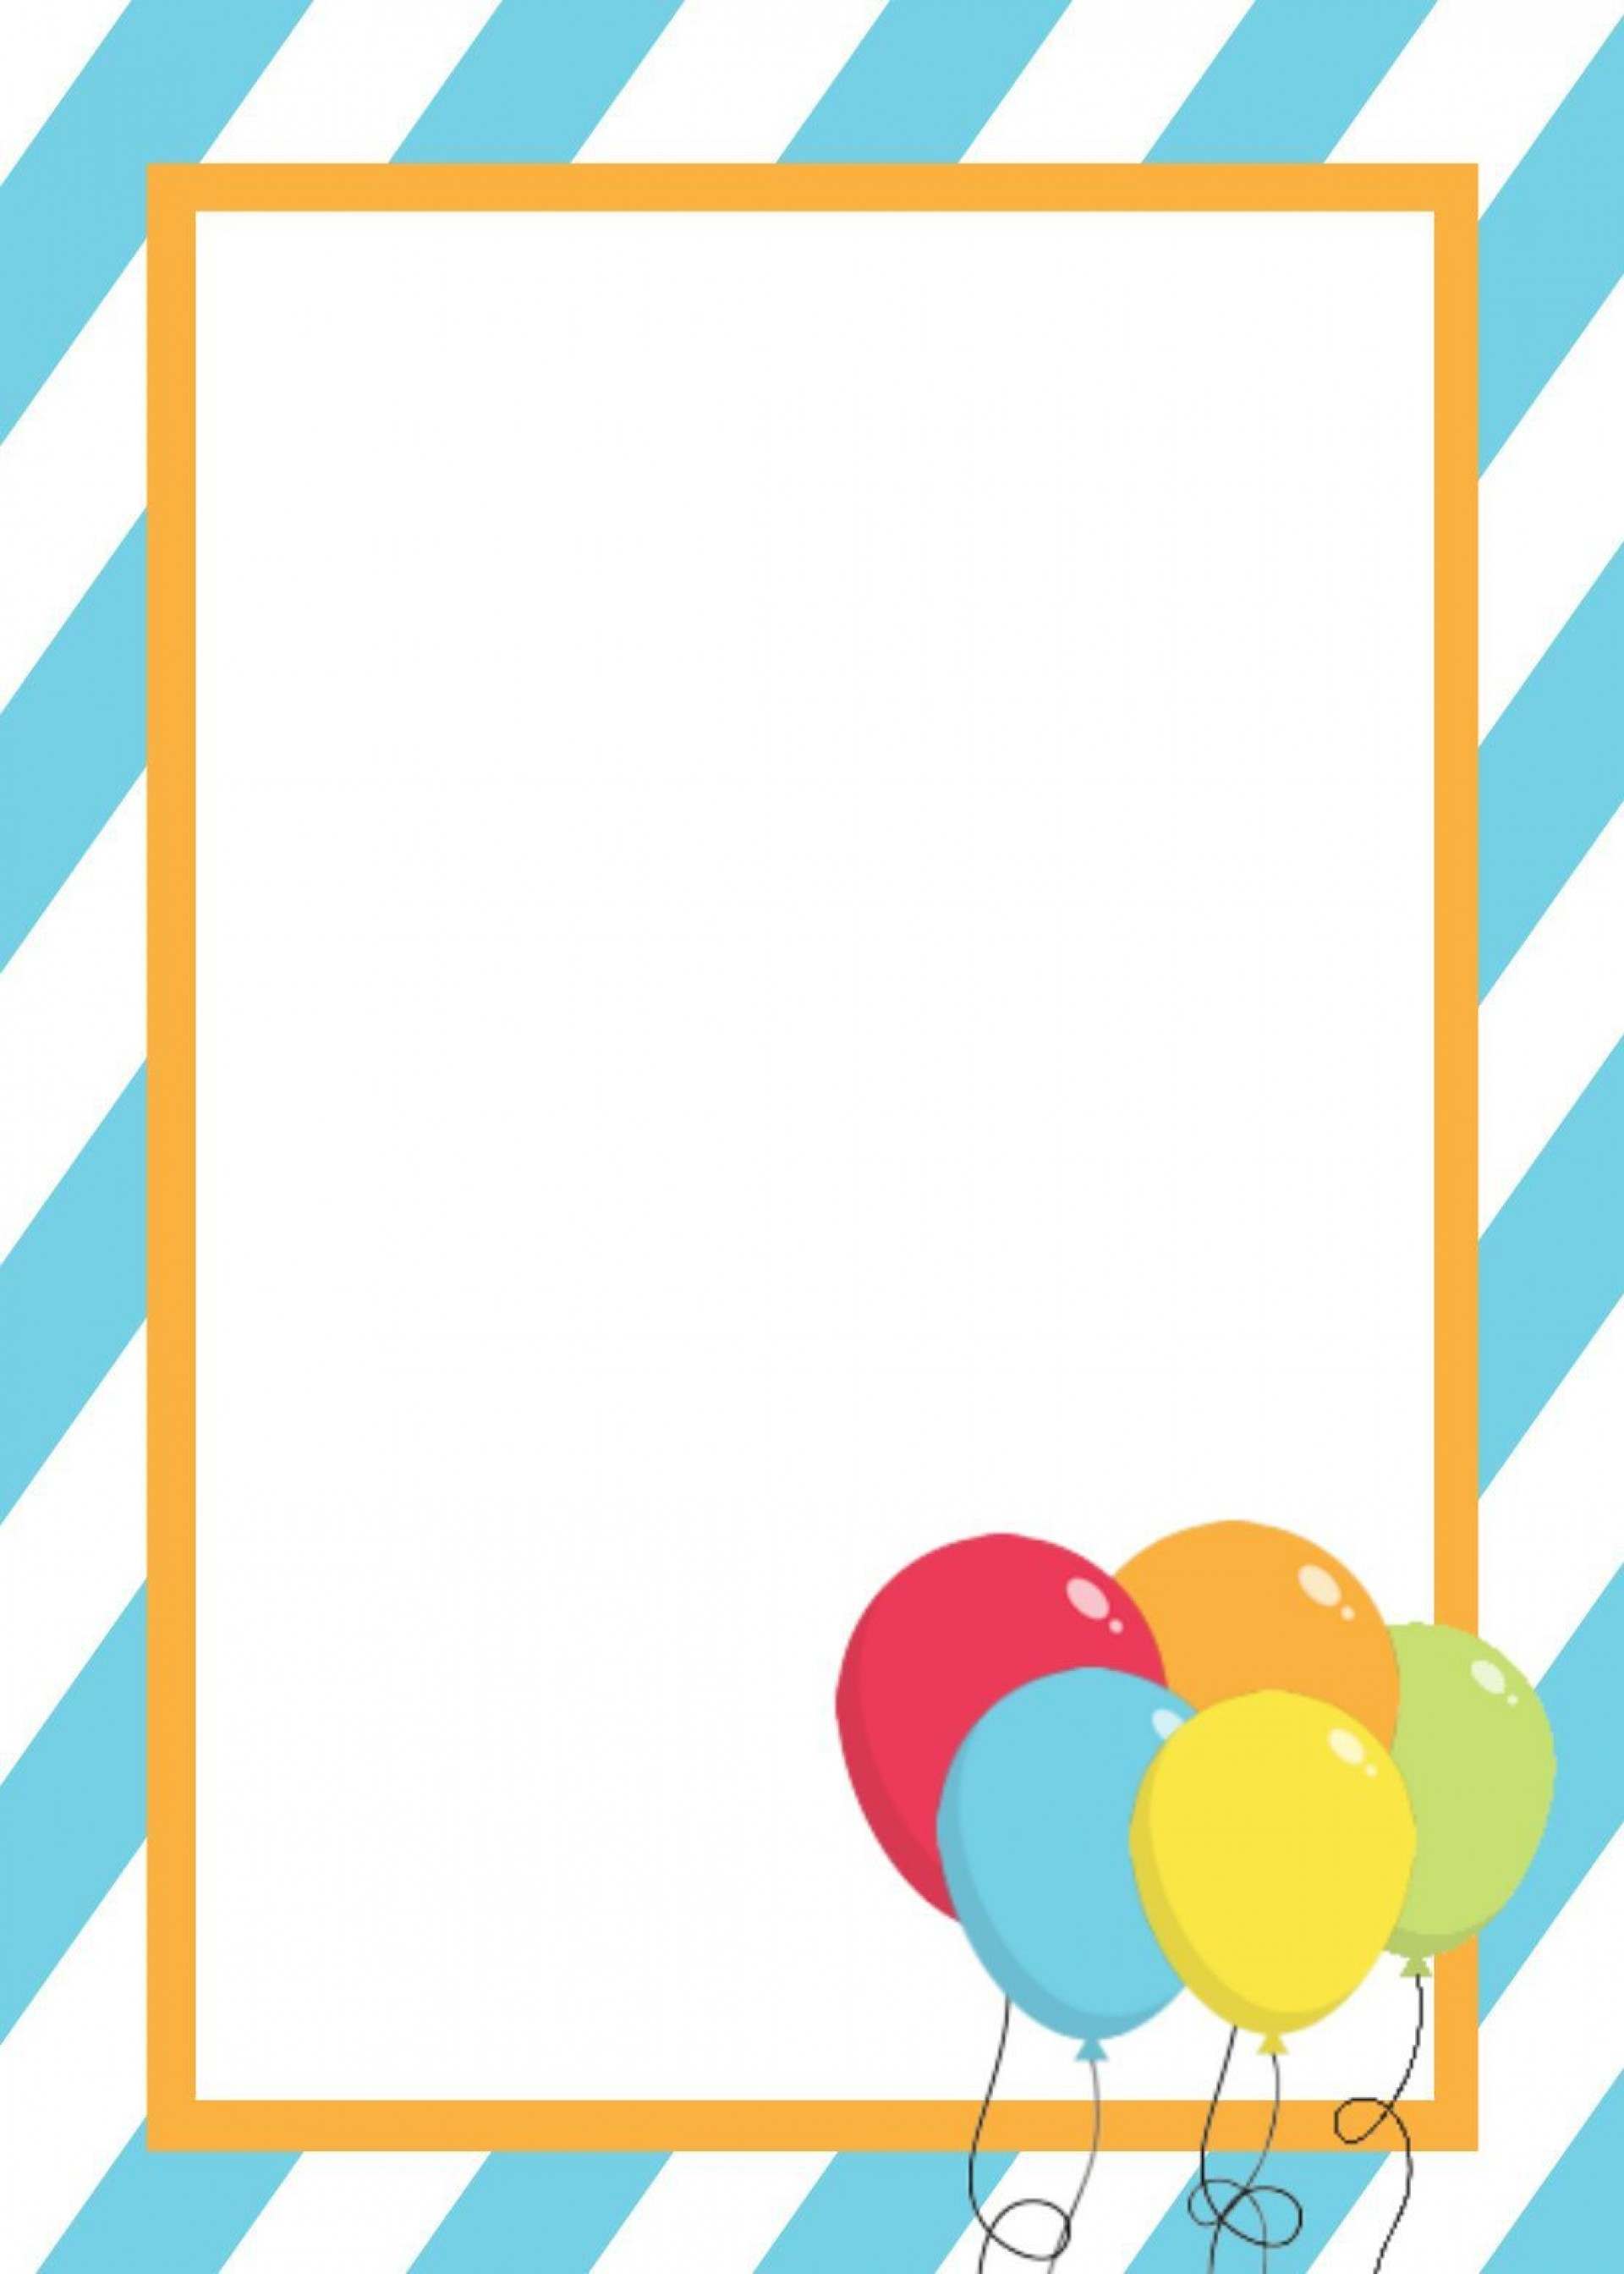 001 Fantastic Blank Birthday Card Template Picture  Word Free Printable Greeting Download1920